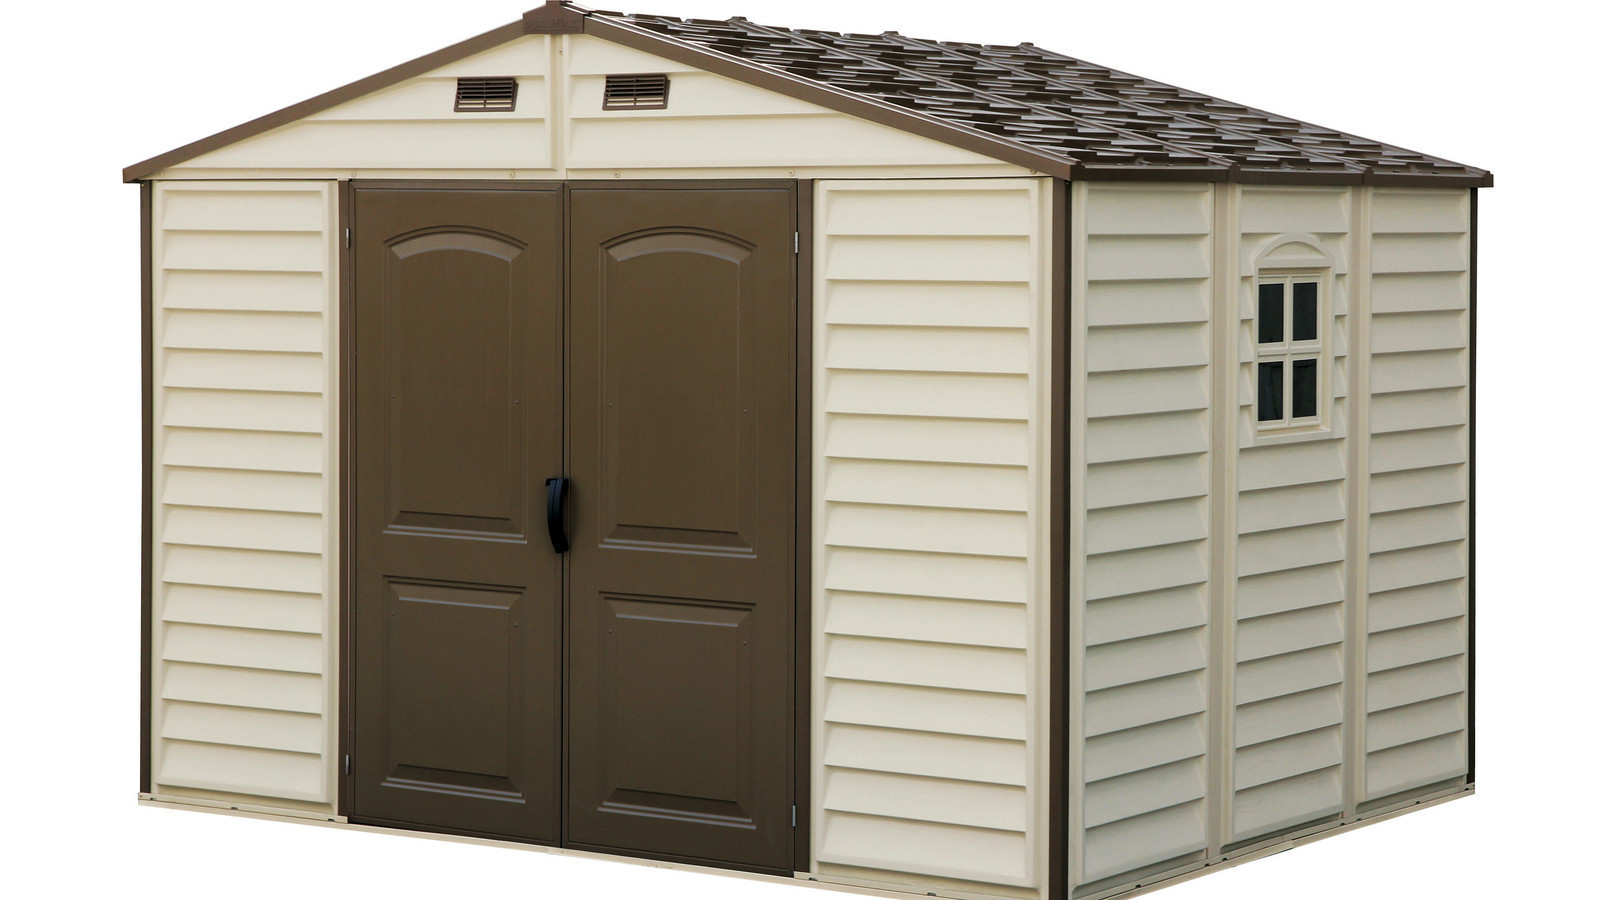 Duramax 30214 vinyl woodside shed on sale with free for Outside storage shed